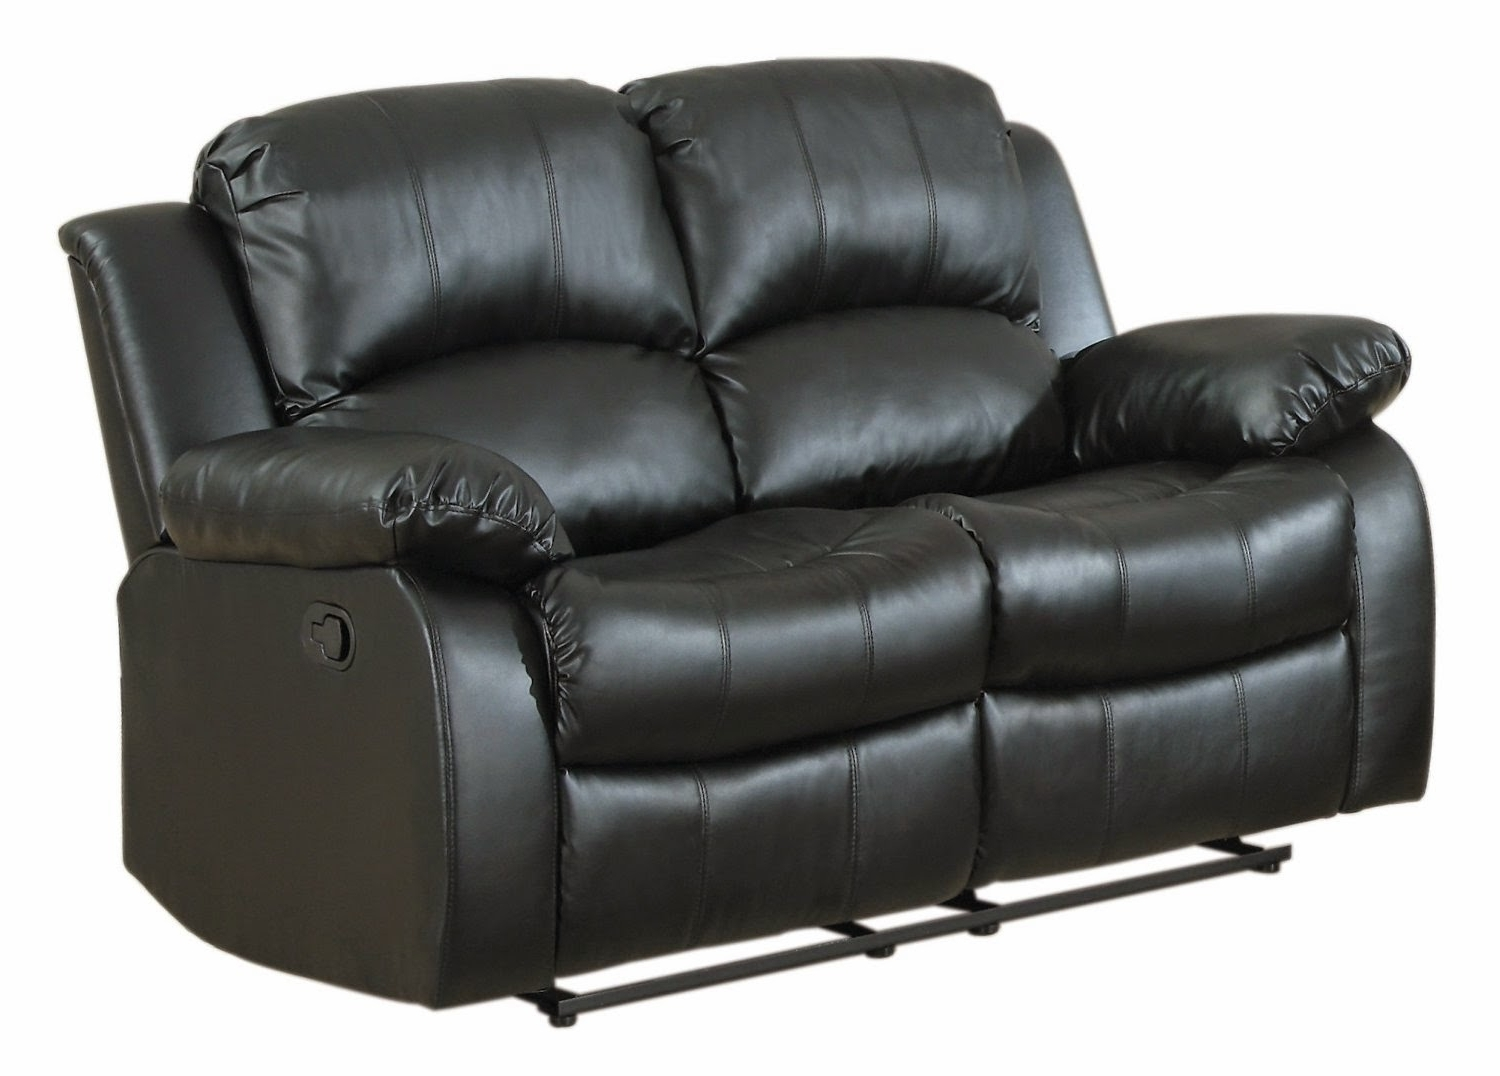 Recent Reclining Sofas For Sale: Berkline Leather Reclining Sofa Costco With Berkline Sofas (View 9 of 15)